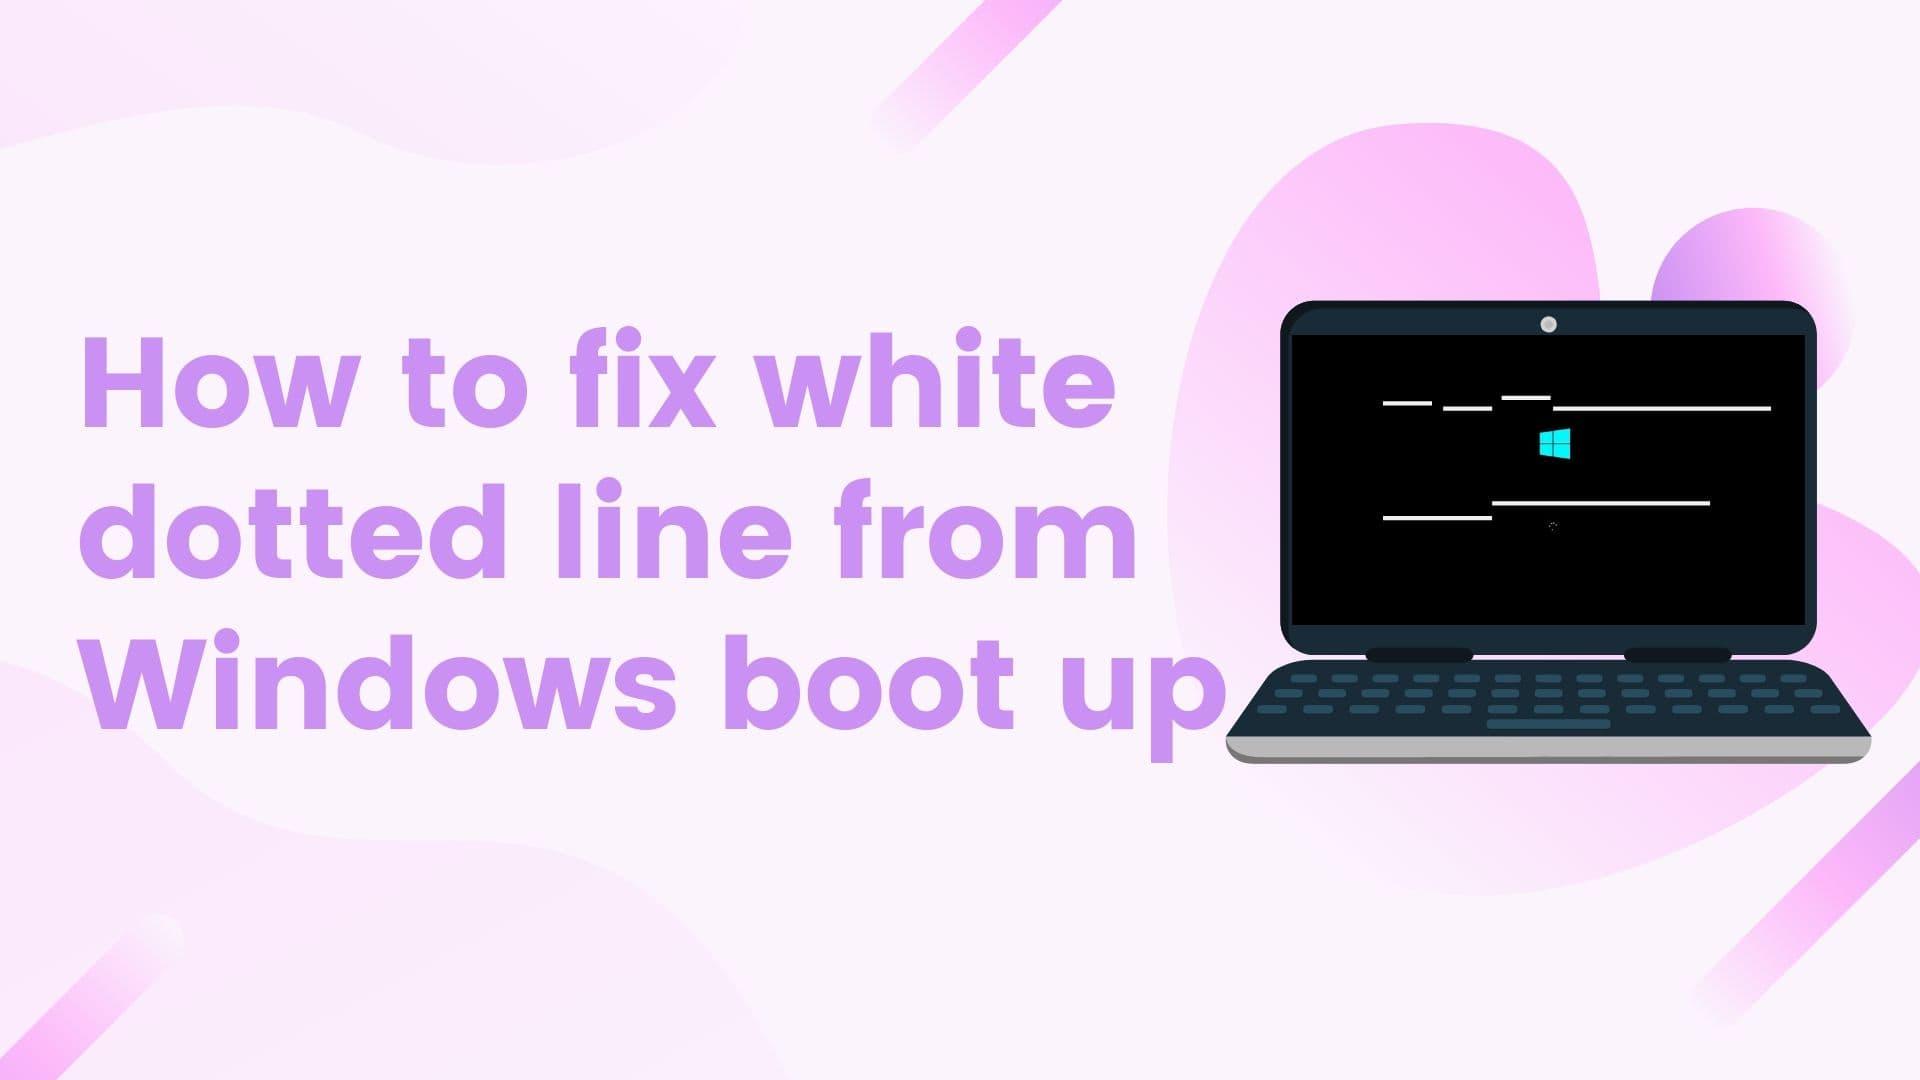 How to fix white line coming on Windows boot up screen